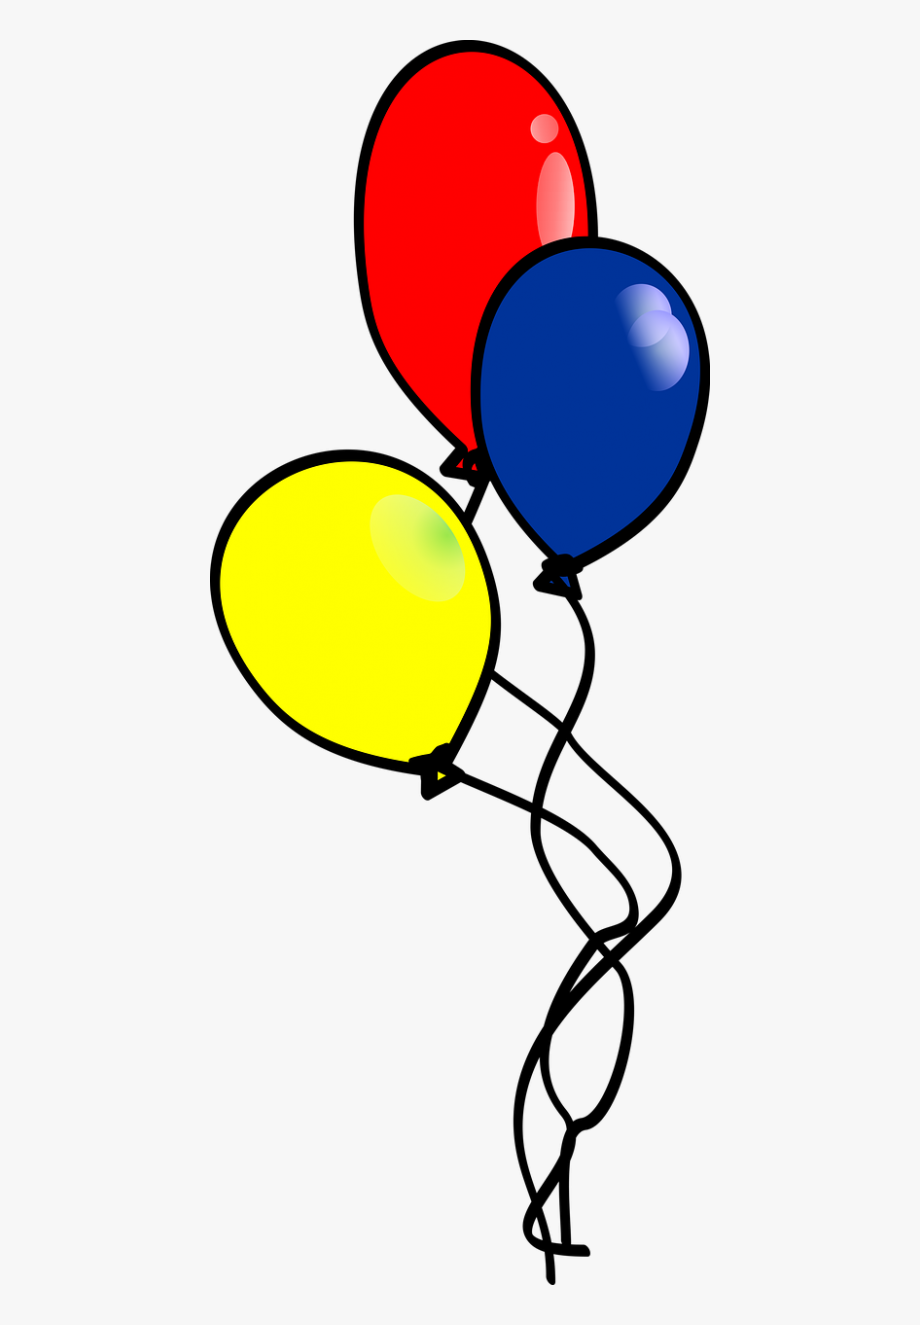 Balloons 3 Primary Colors Balloons With Highlight Bubbles.